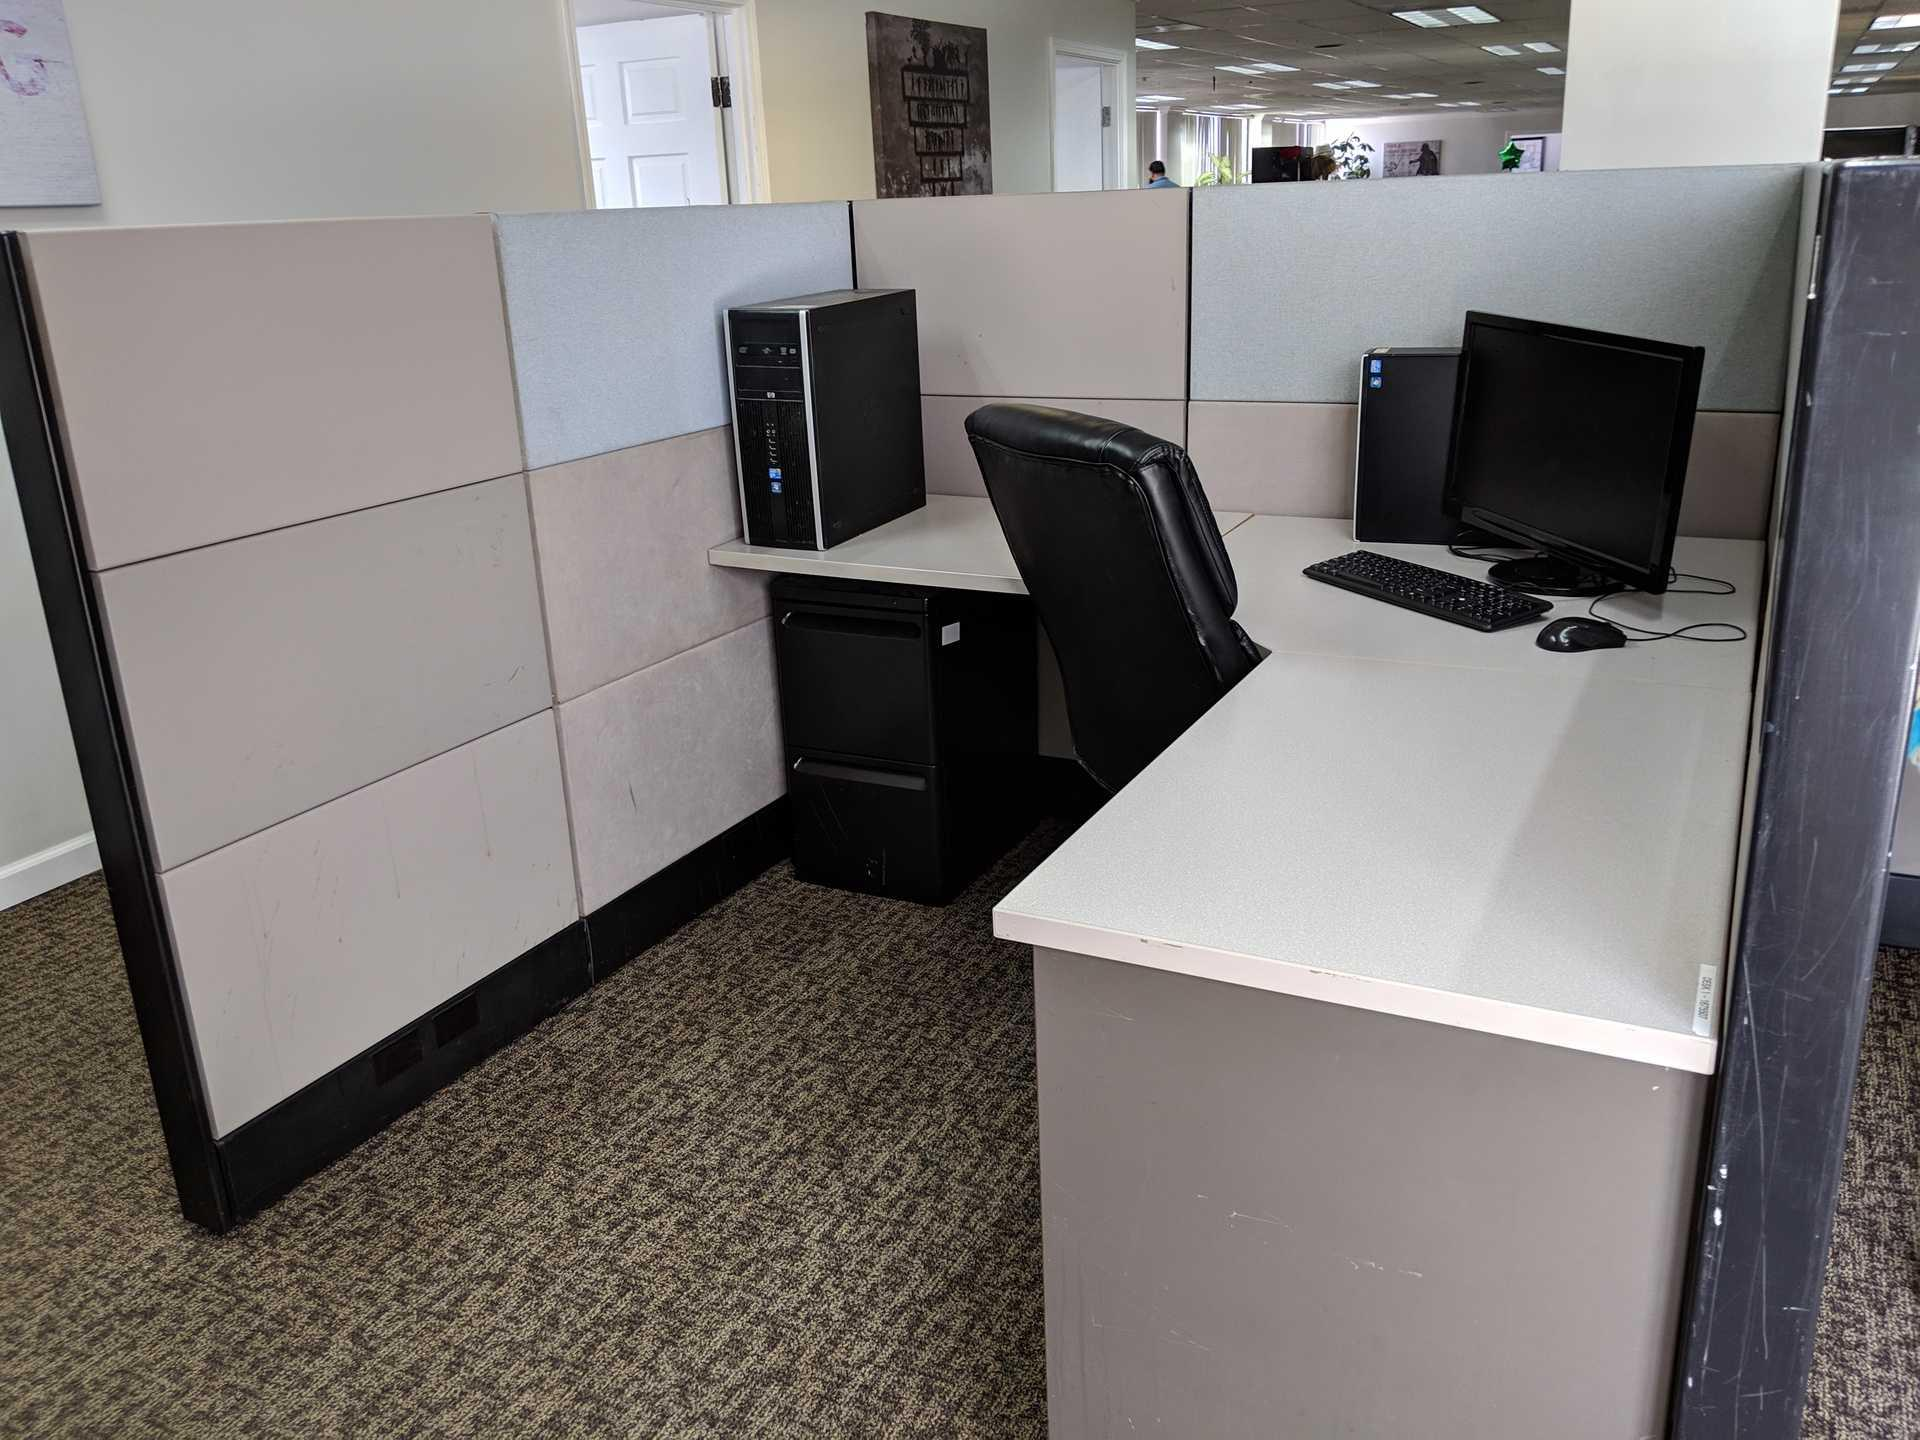 Push Live-Santa Ana - Dedicated Cubicles with Game Area